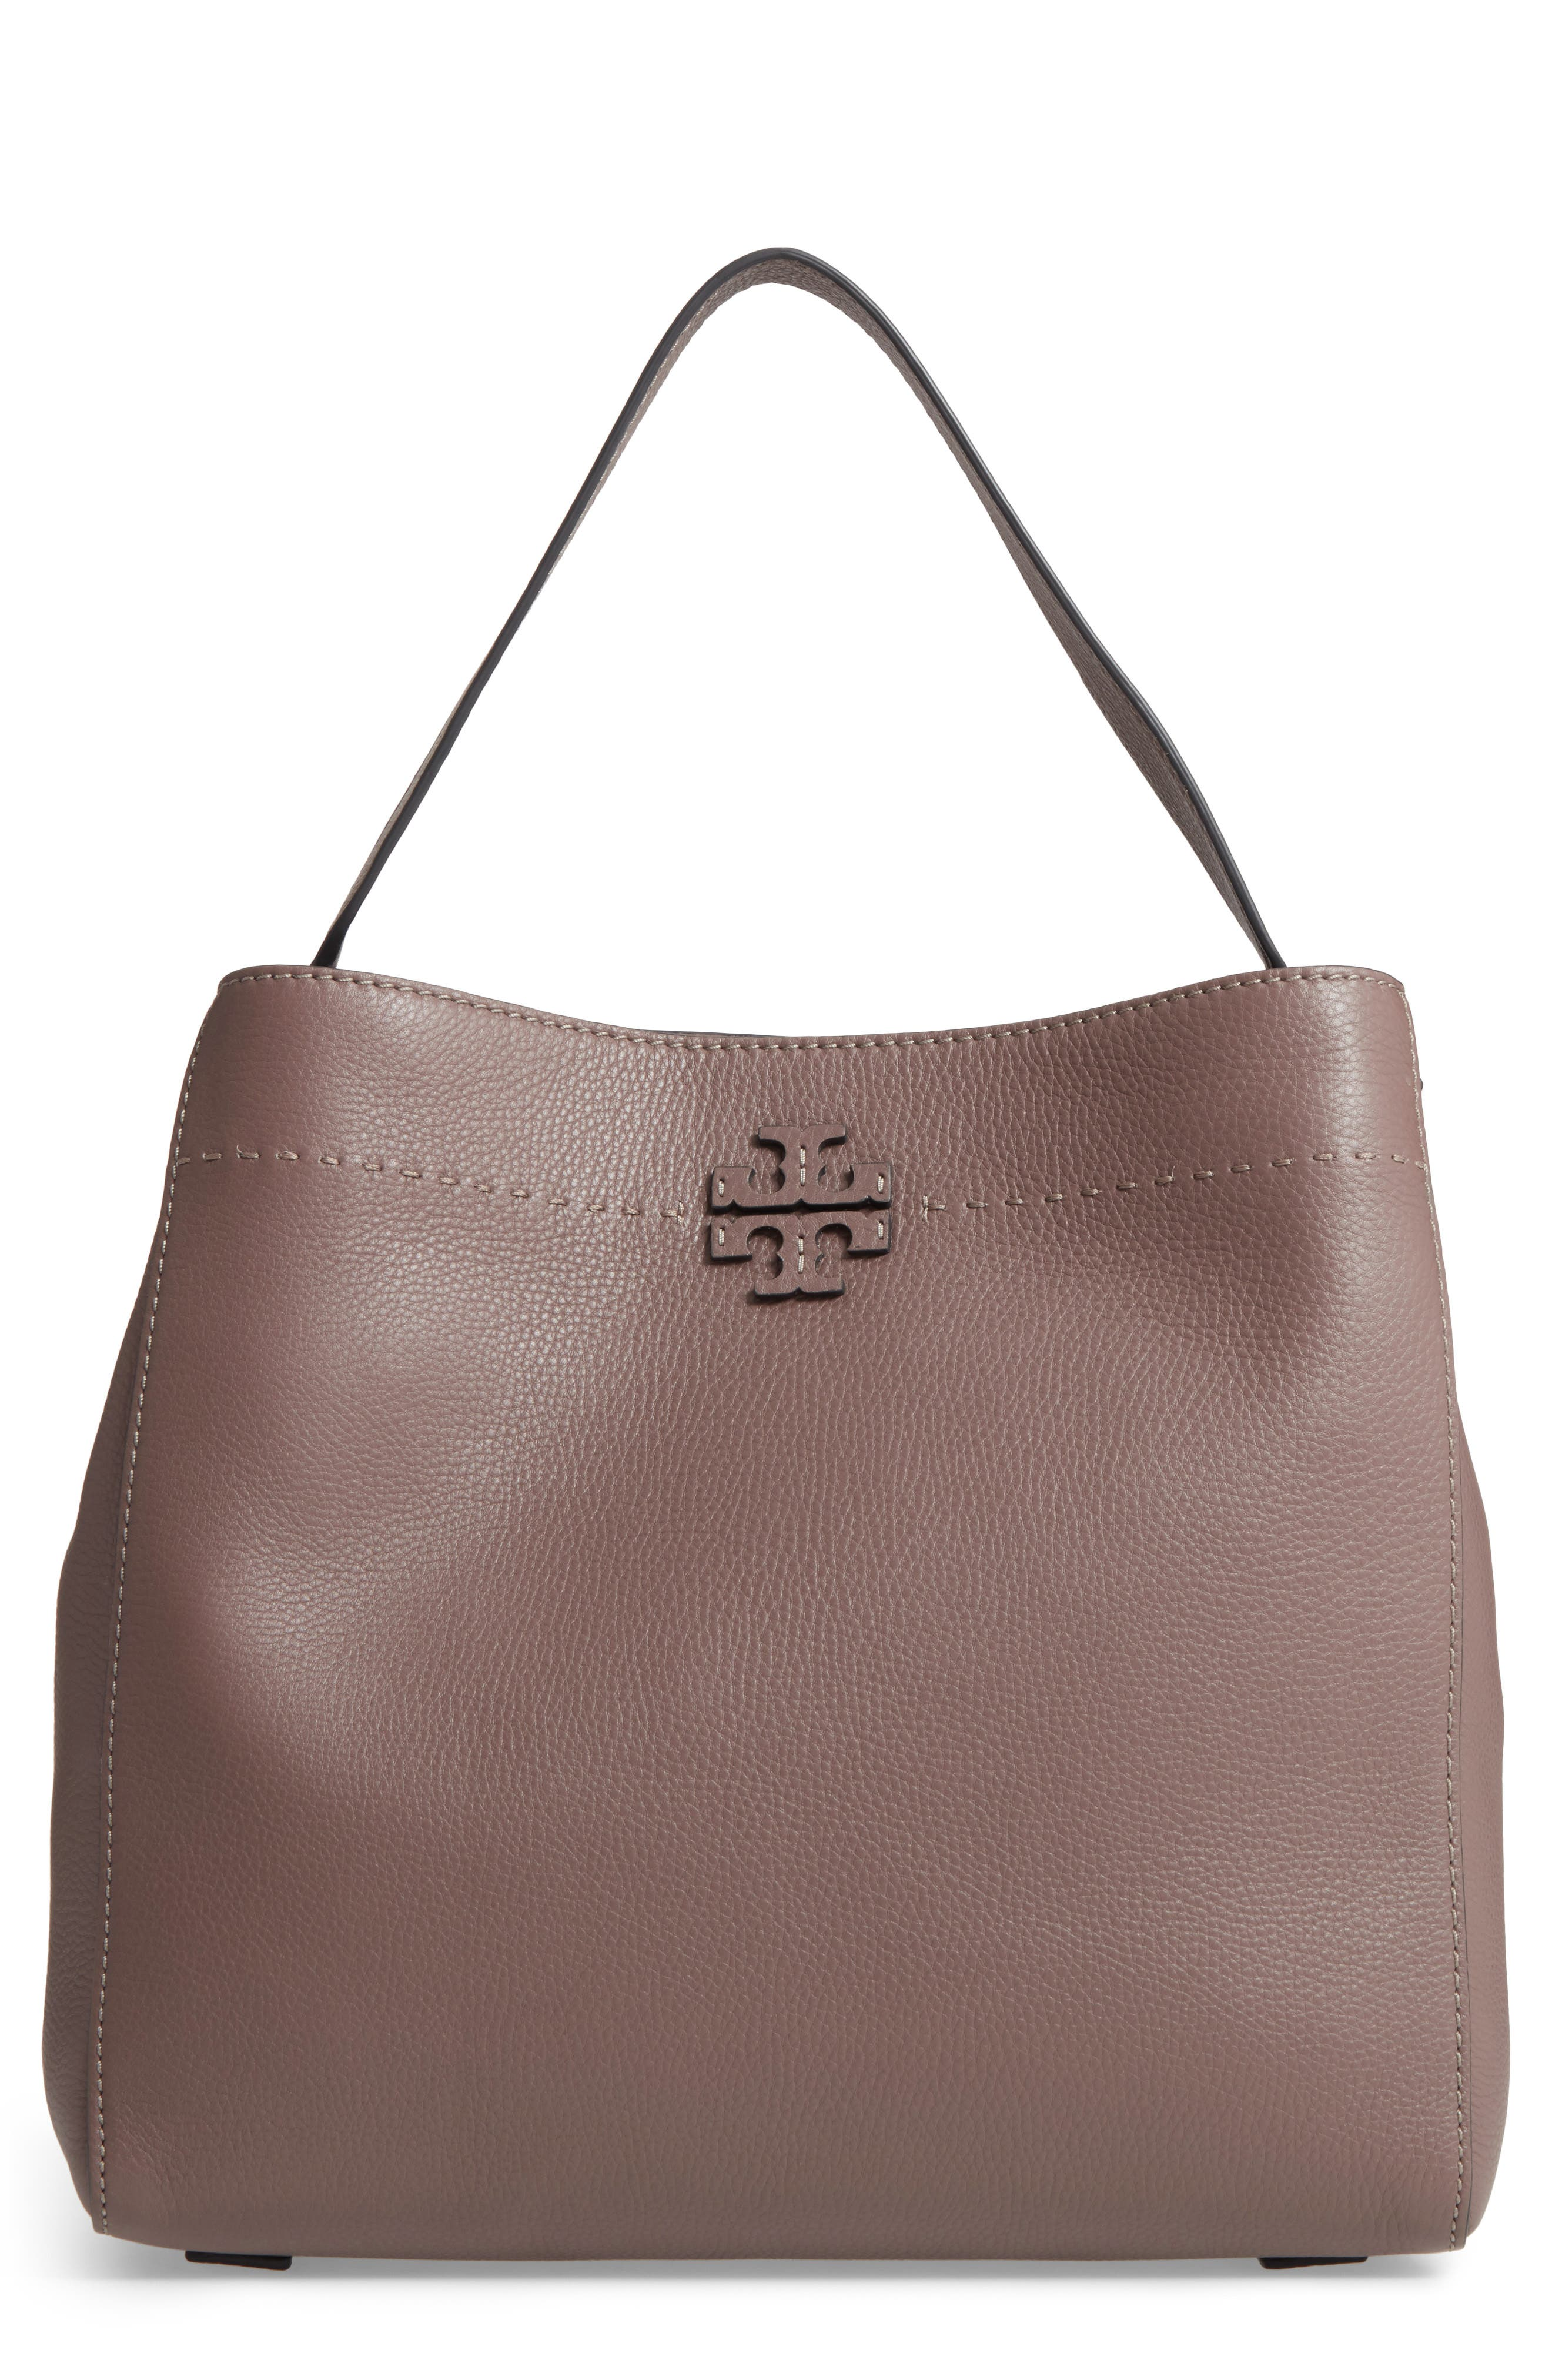 Main Image - Tory Burch McGraw Leather Hobo